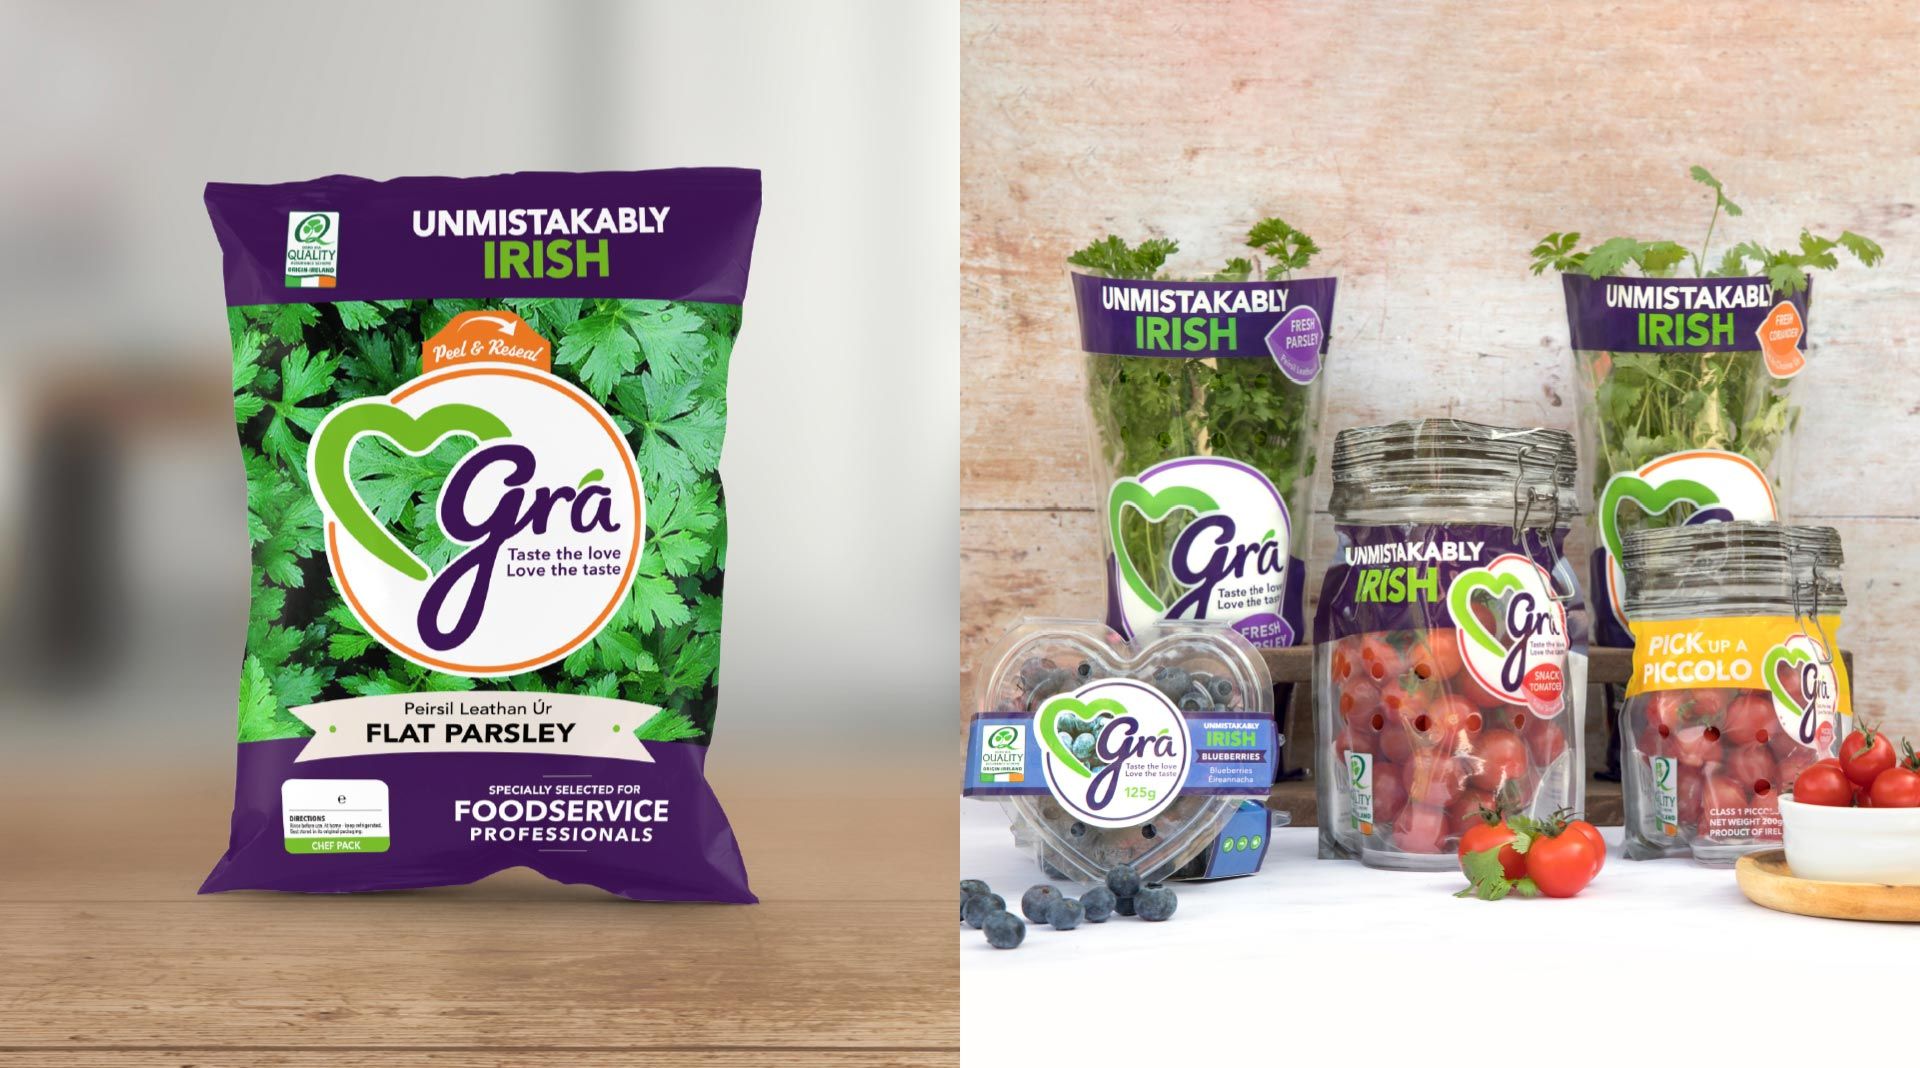 Grá food service packaging designed by Sweet.